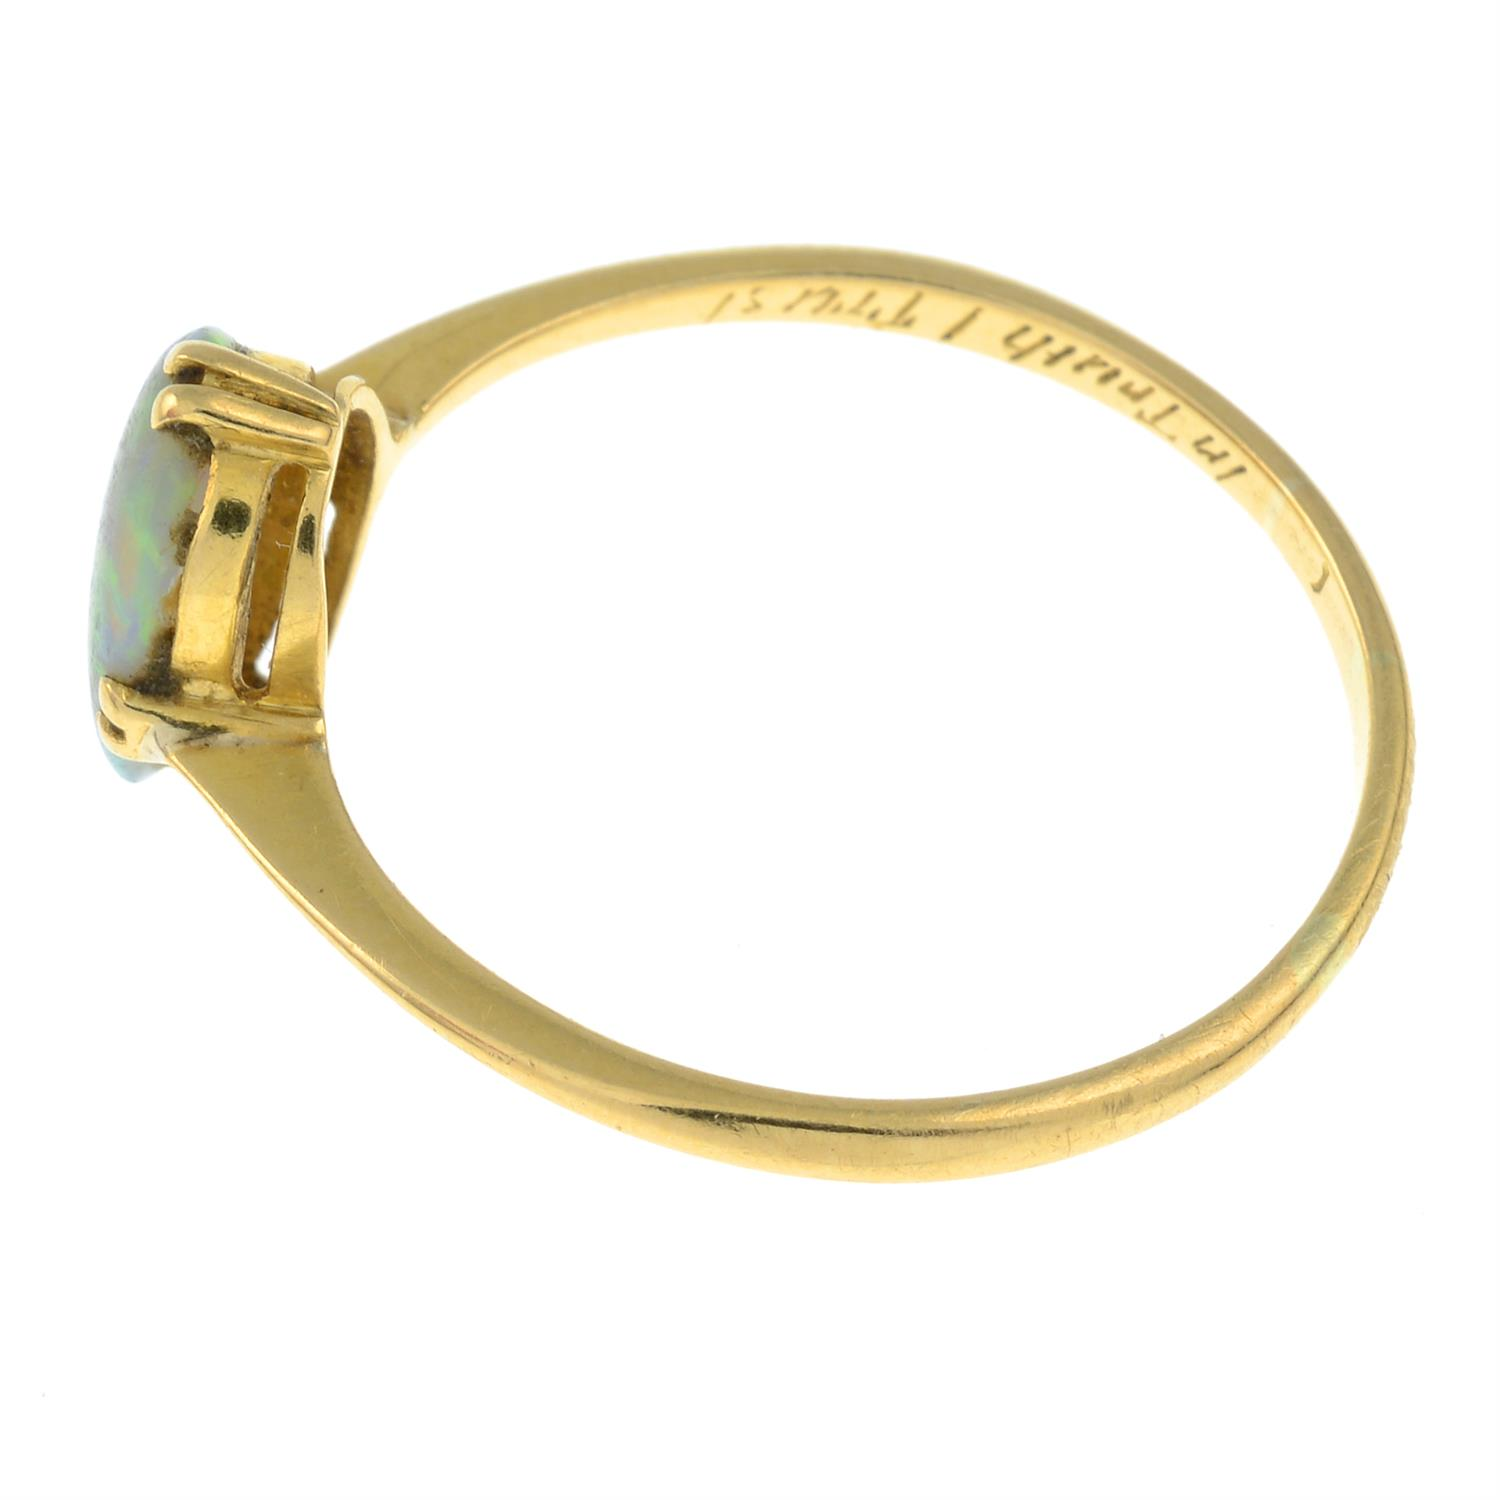 An early 20th century 18ct gold opal single-stone ring. - Image 2 of 3